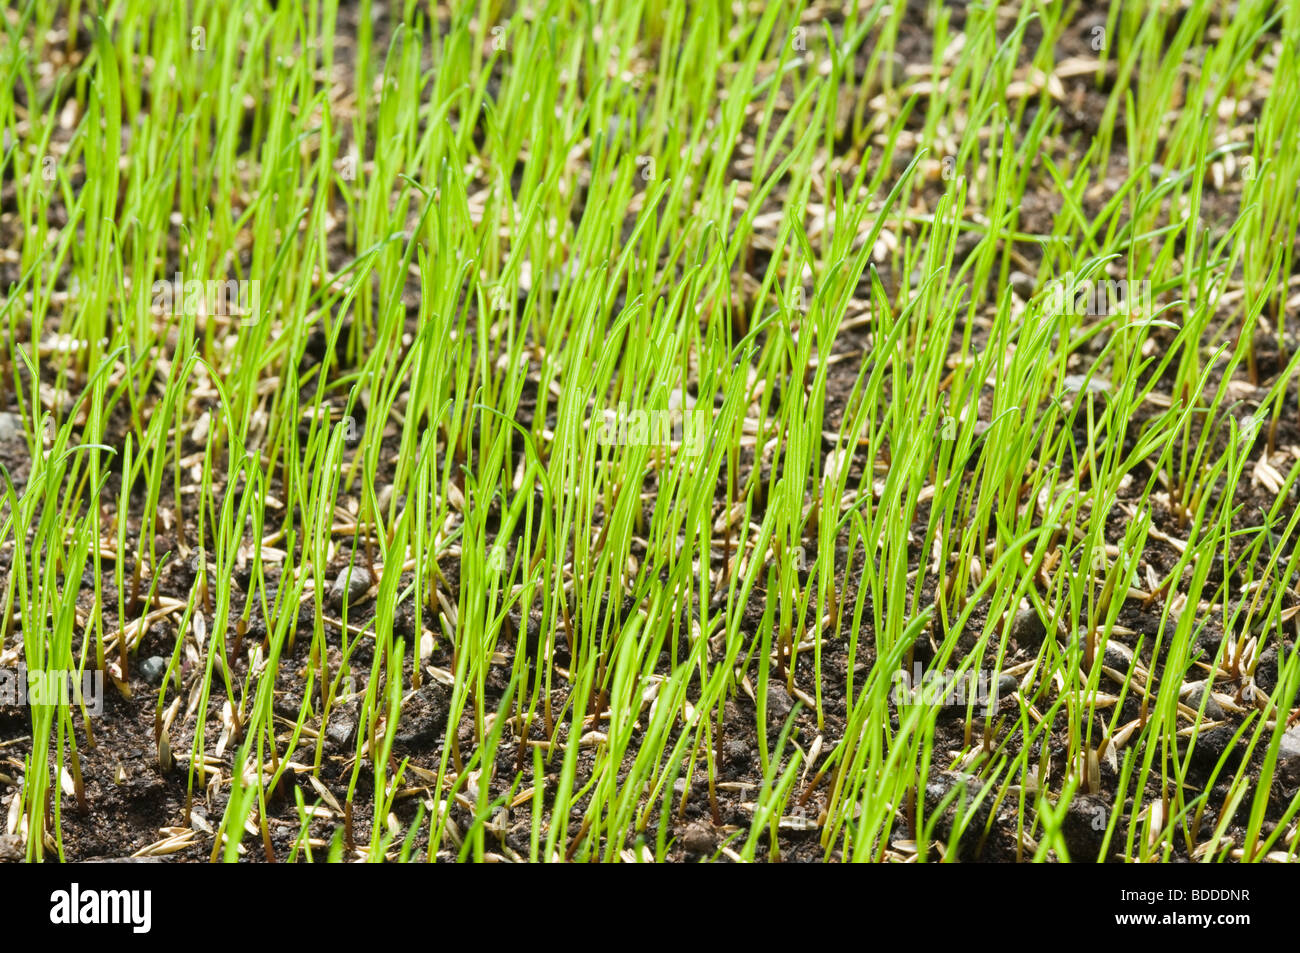 Grass seed germinating for lawn. - Stock Image